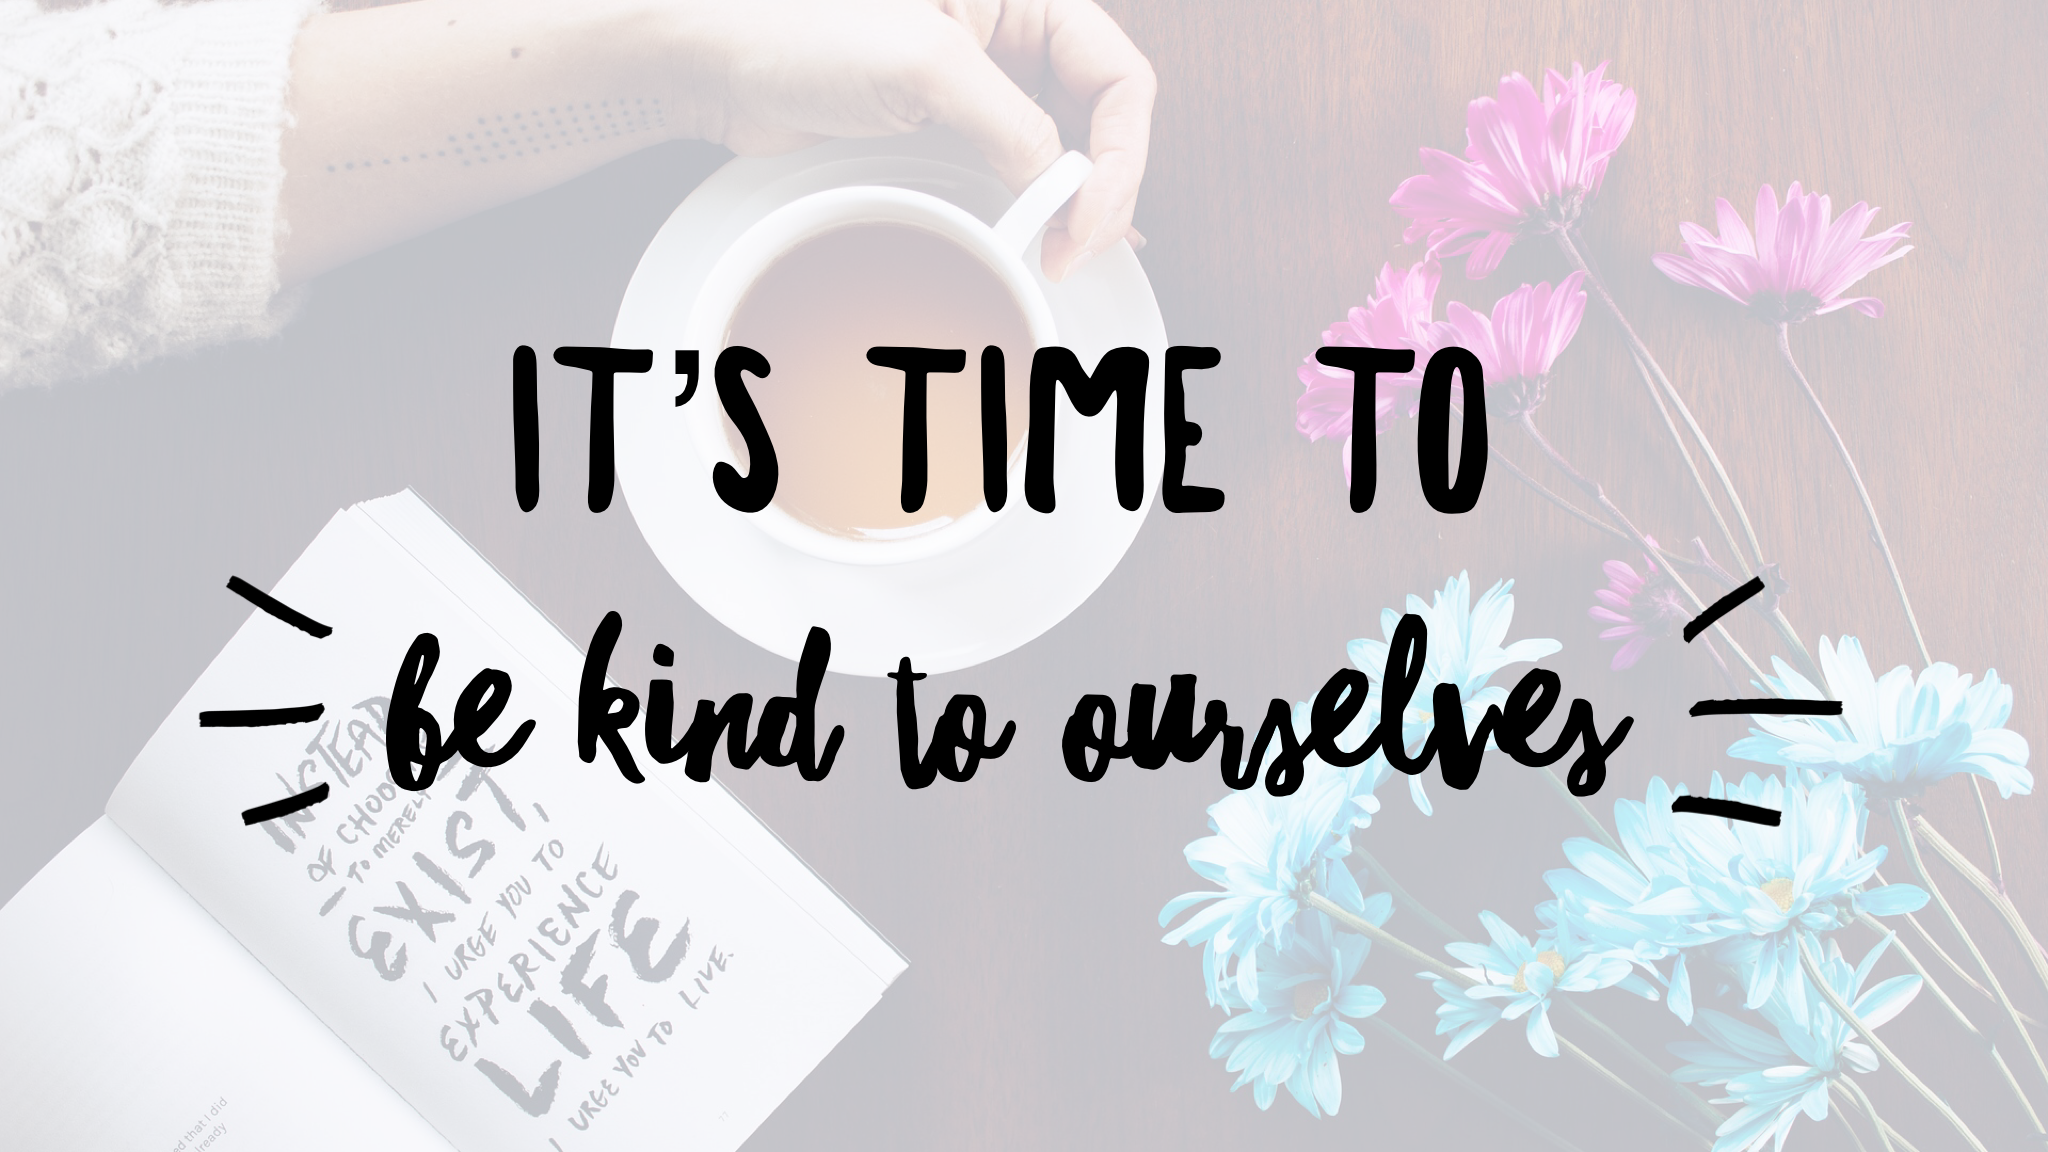 It's Time to Be Kind to Ourselves